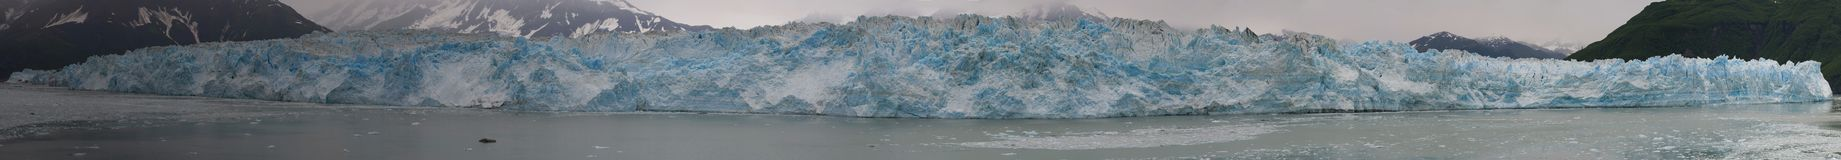 The Hubbard Glacier while melting, Alaska huge panorama Royalty Free Stock Image